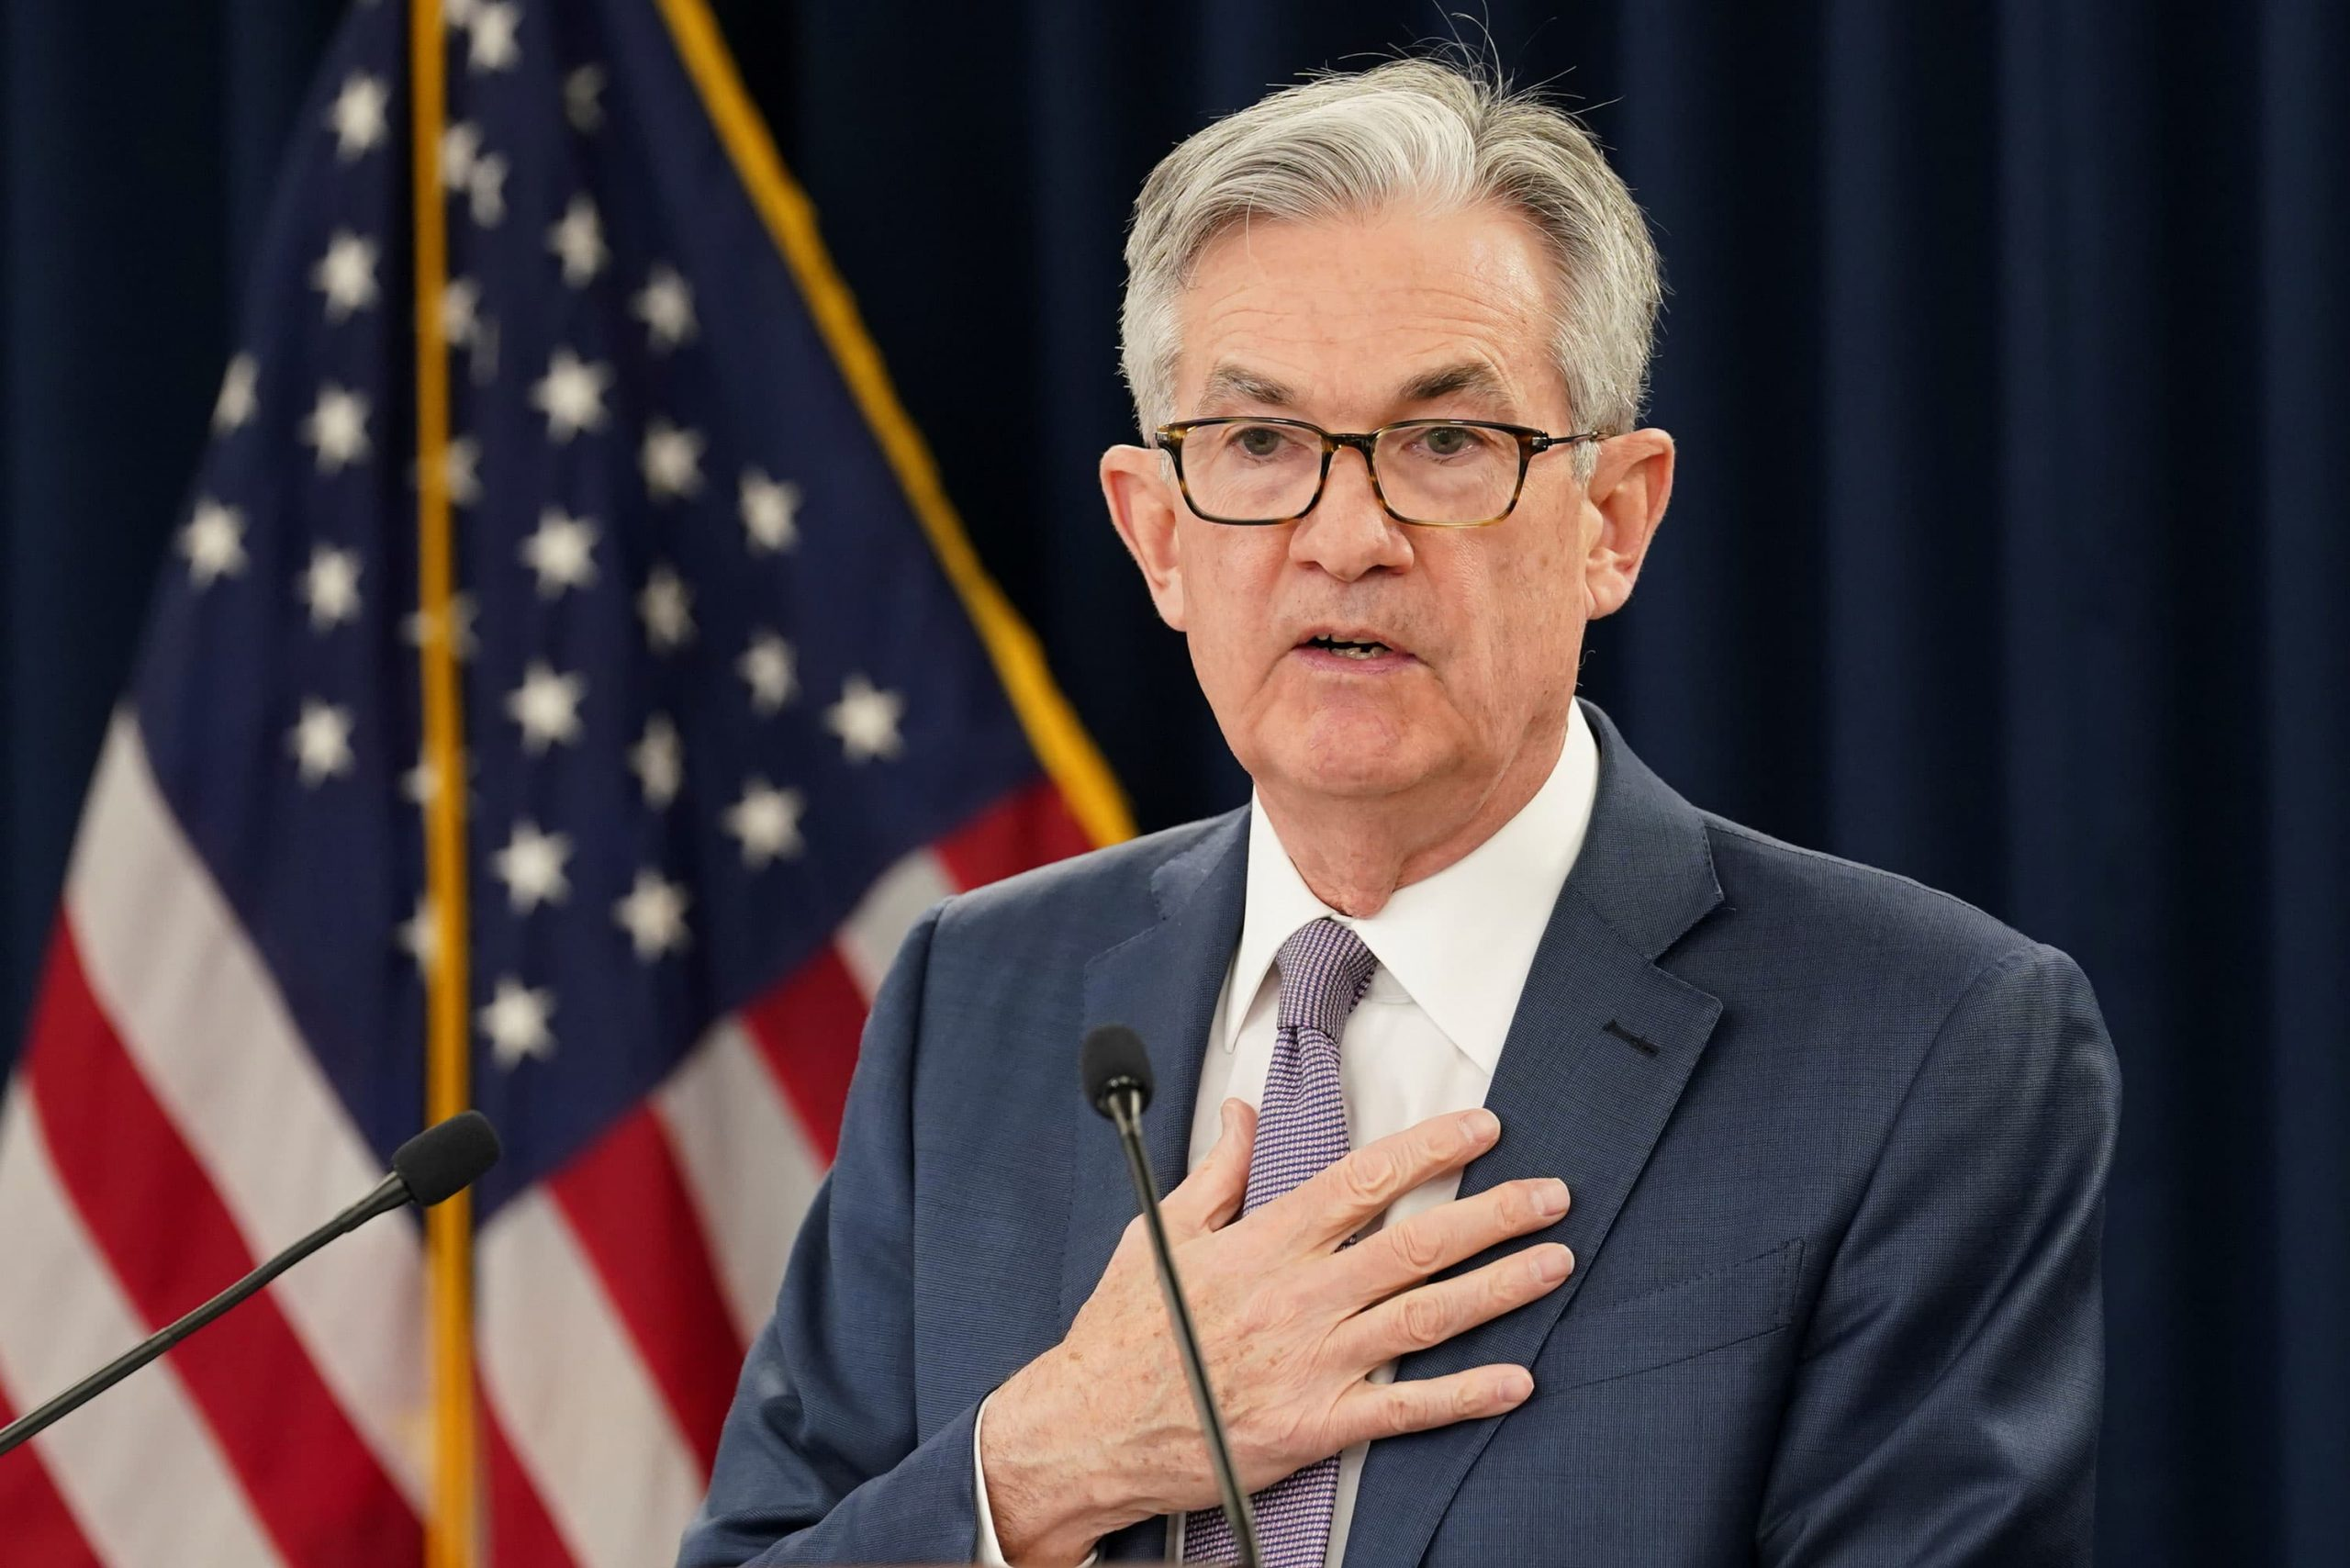 The Fed moves up its timeline for rate hikes as inflation rises